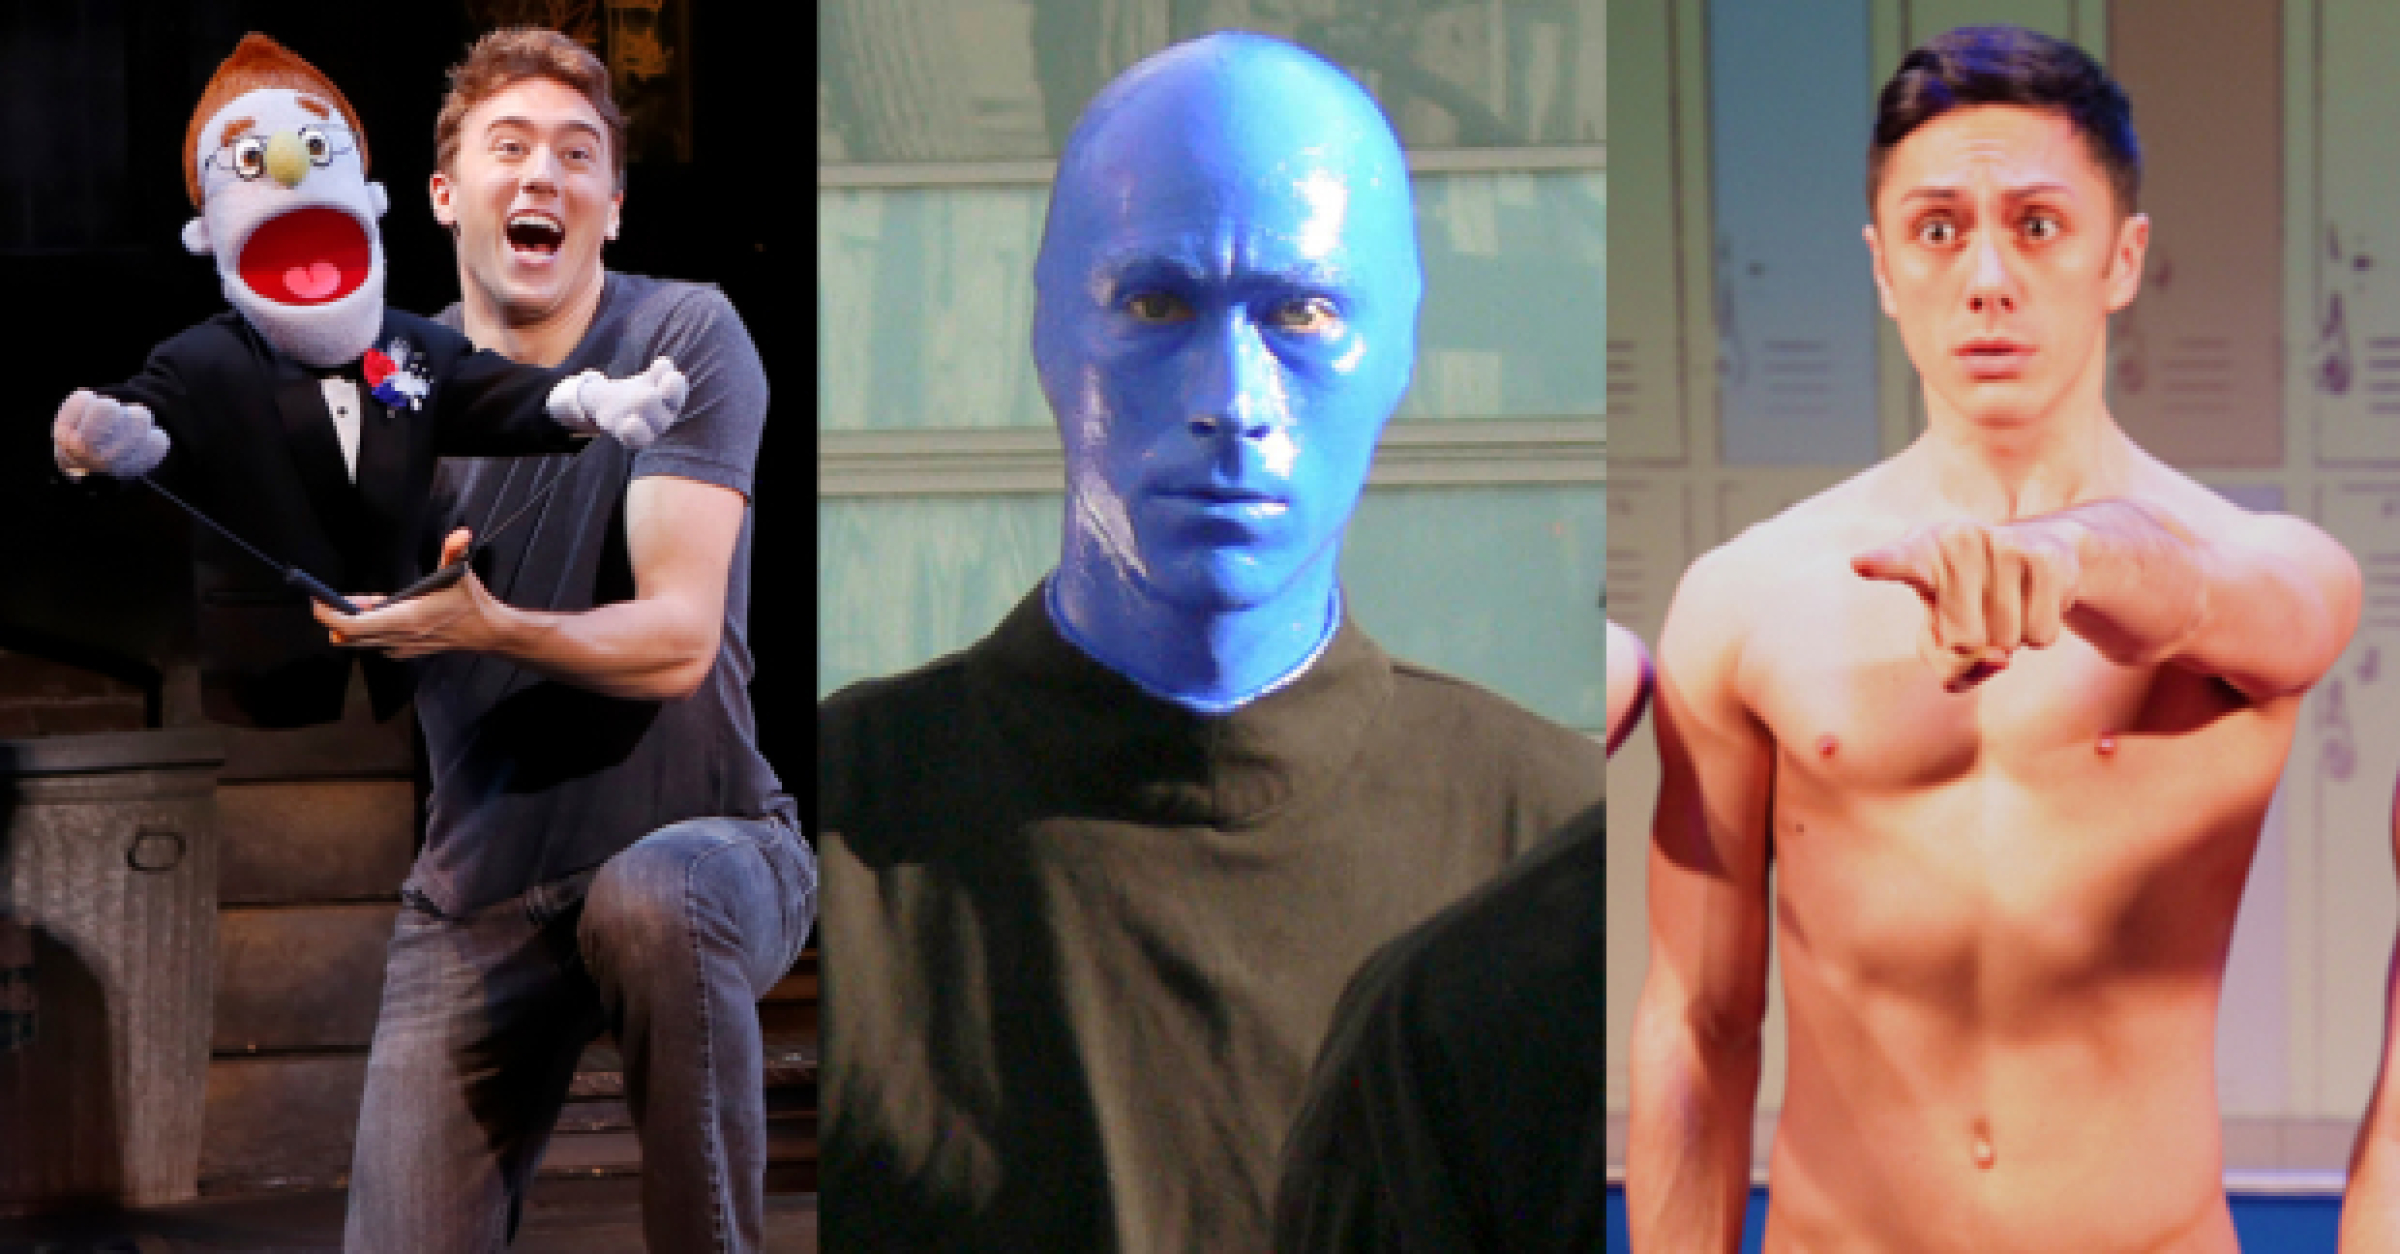 Andrea Lewis Nude that's still running? 11 off-broadway shows still going